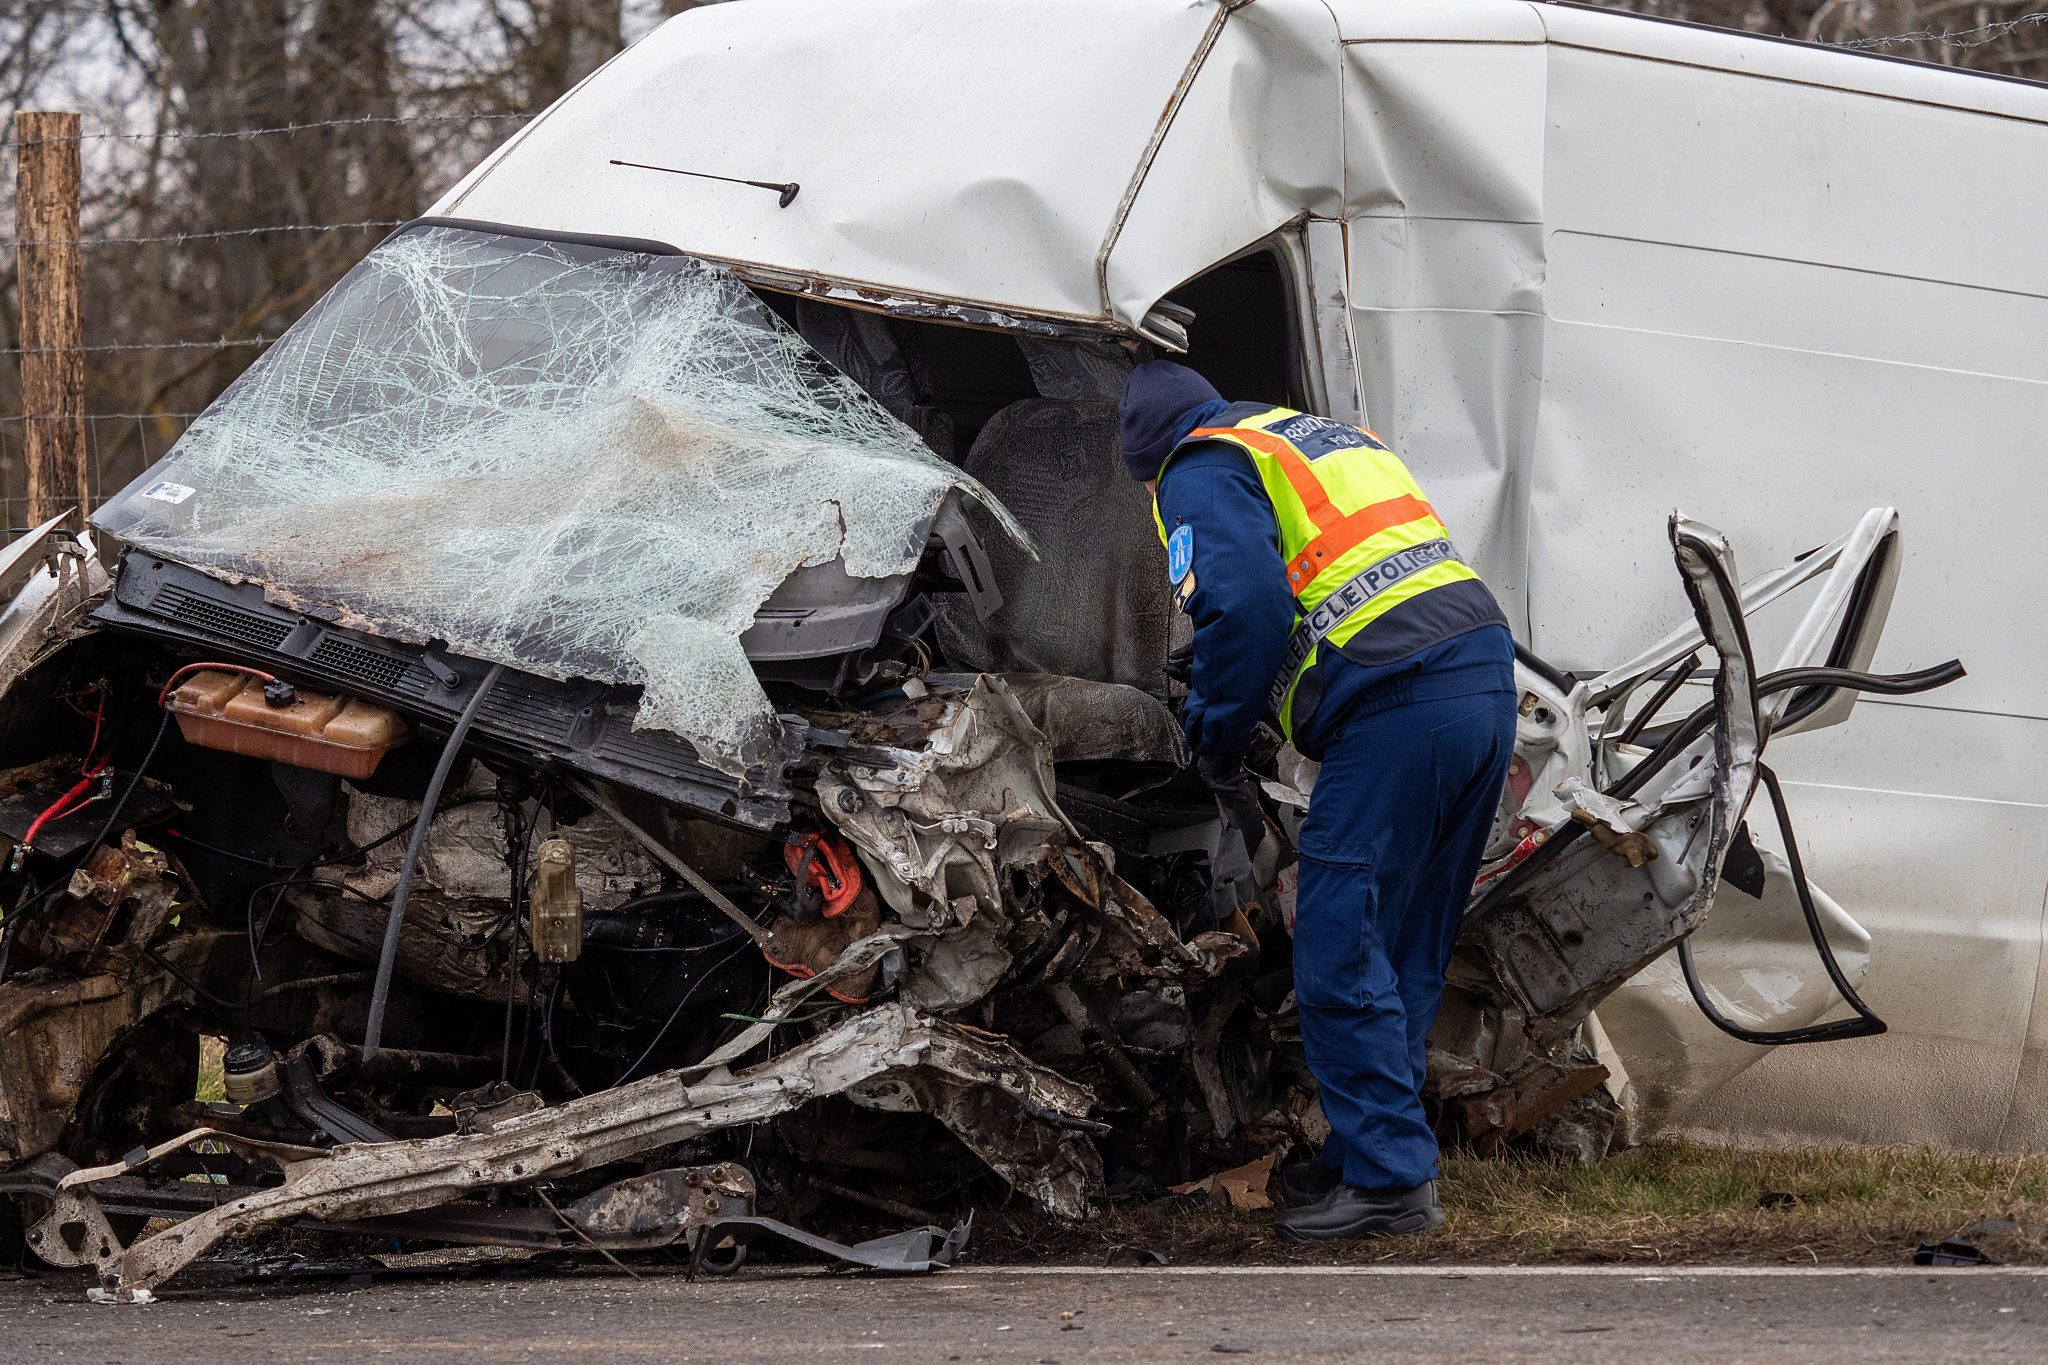 Roadside Deaths at Historic Low